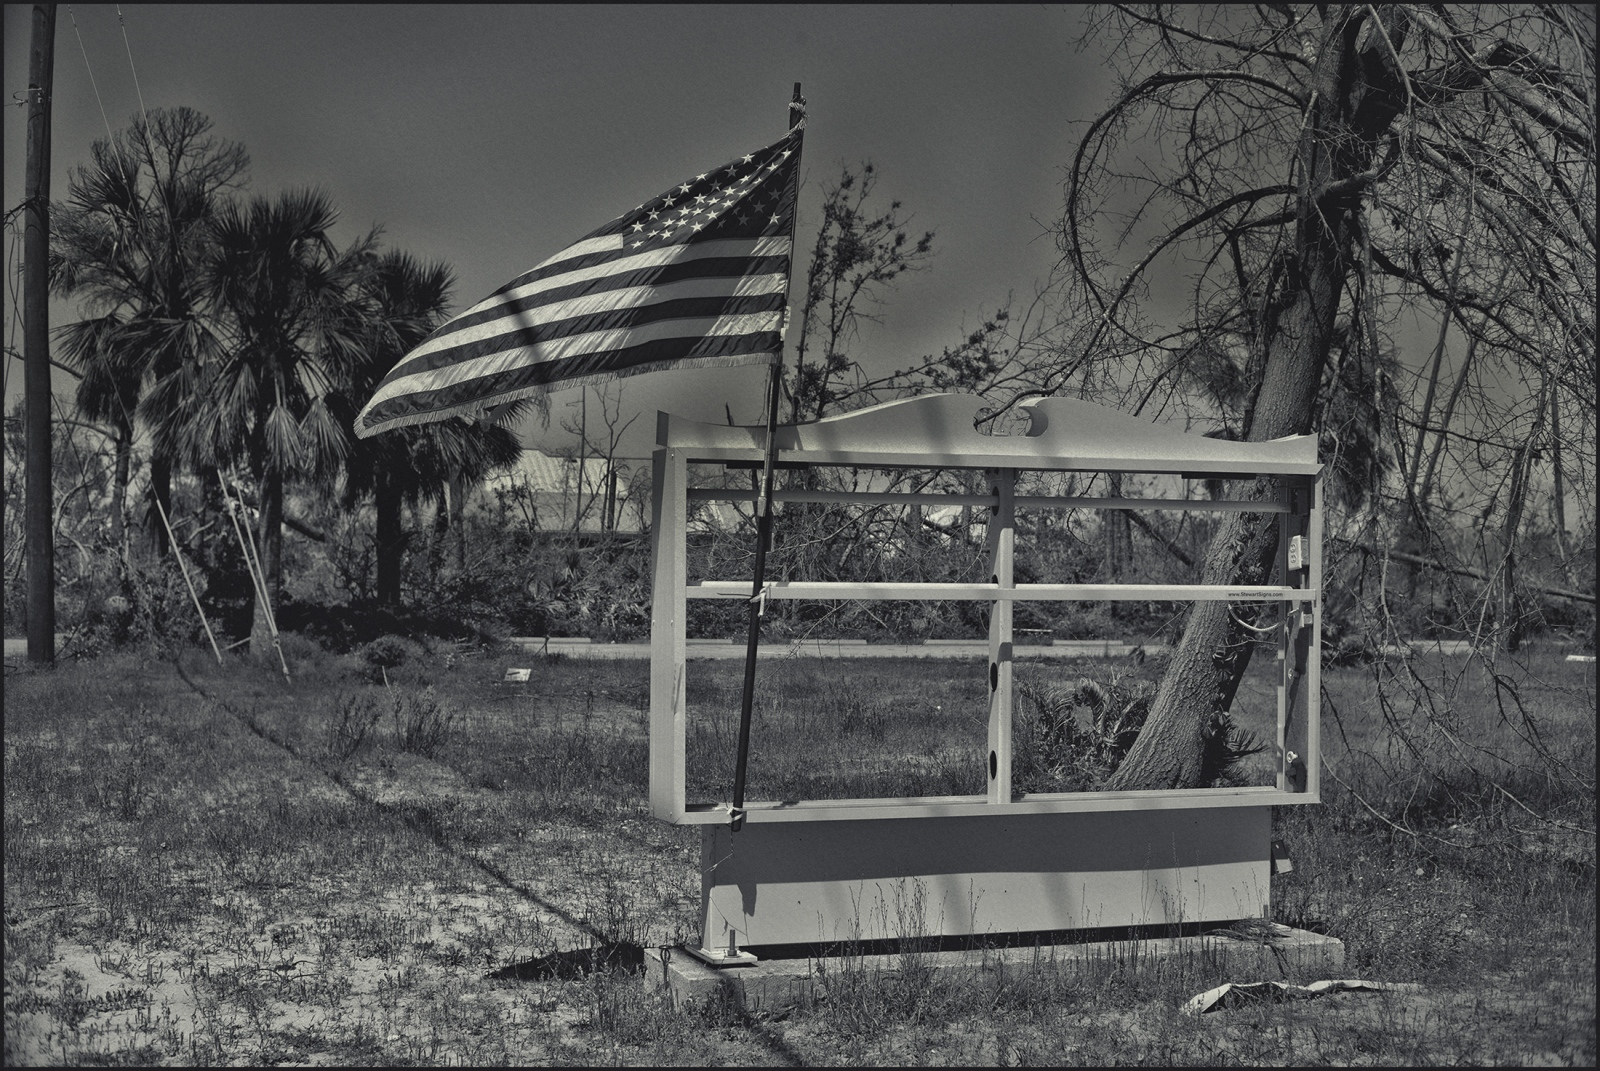 Mexico Beach, Florida. Post hurricane Michael. 2019.